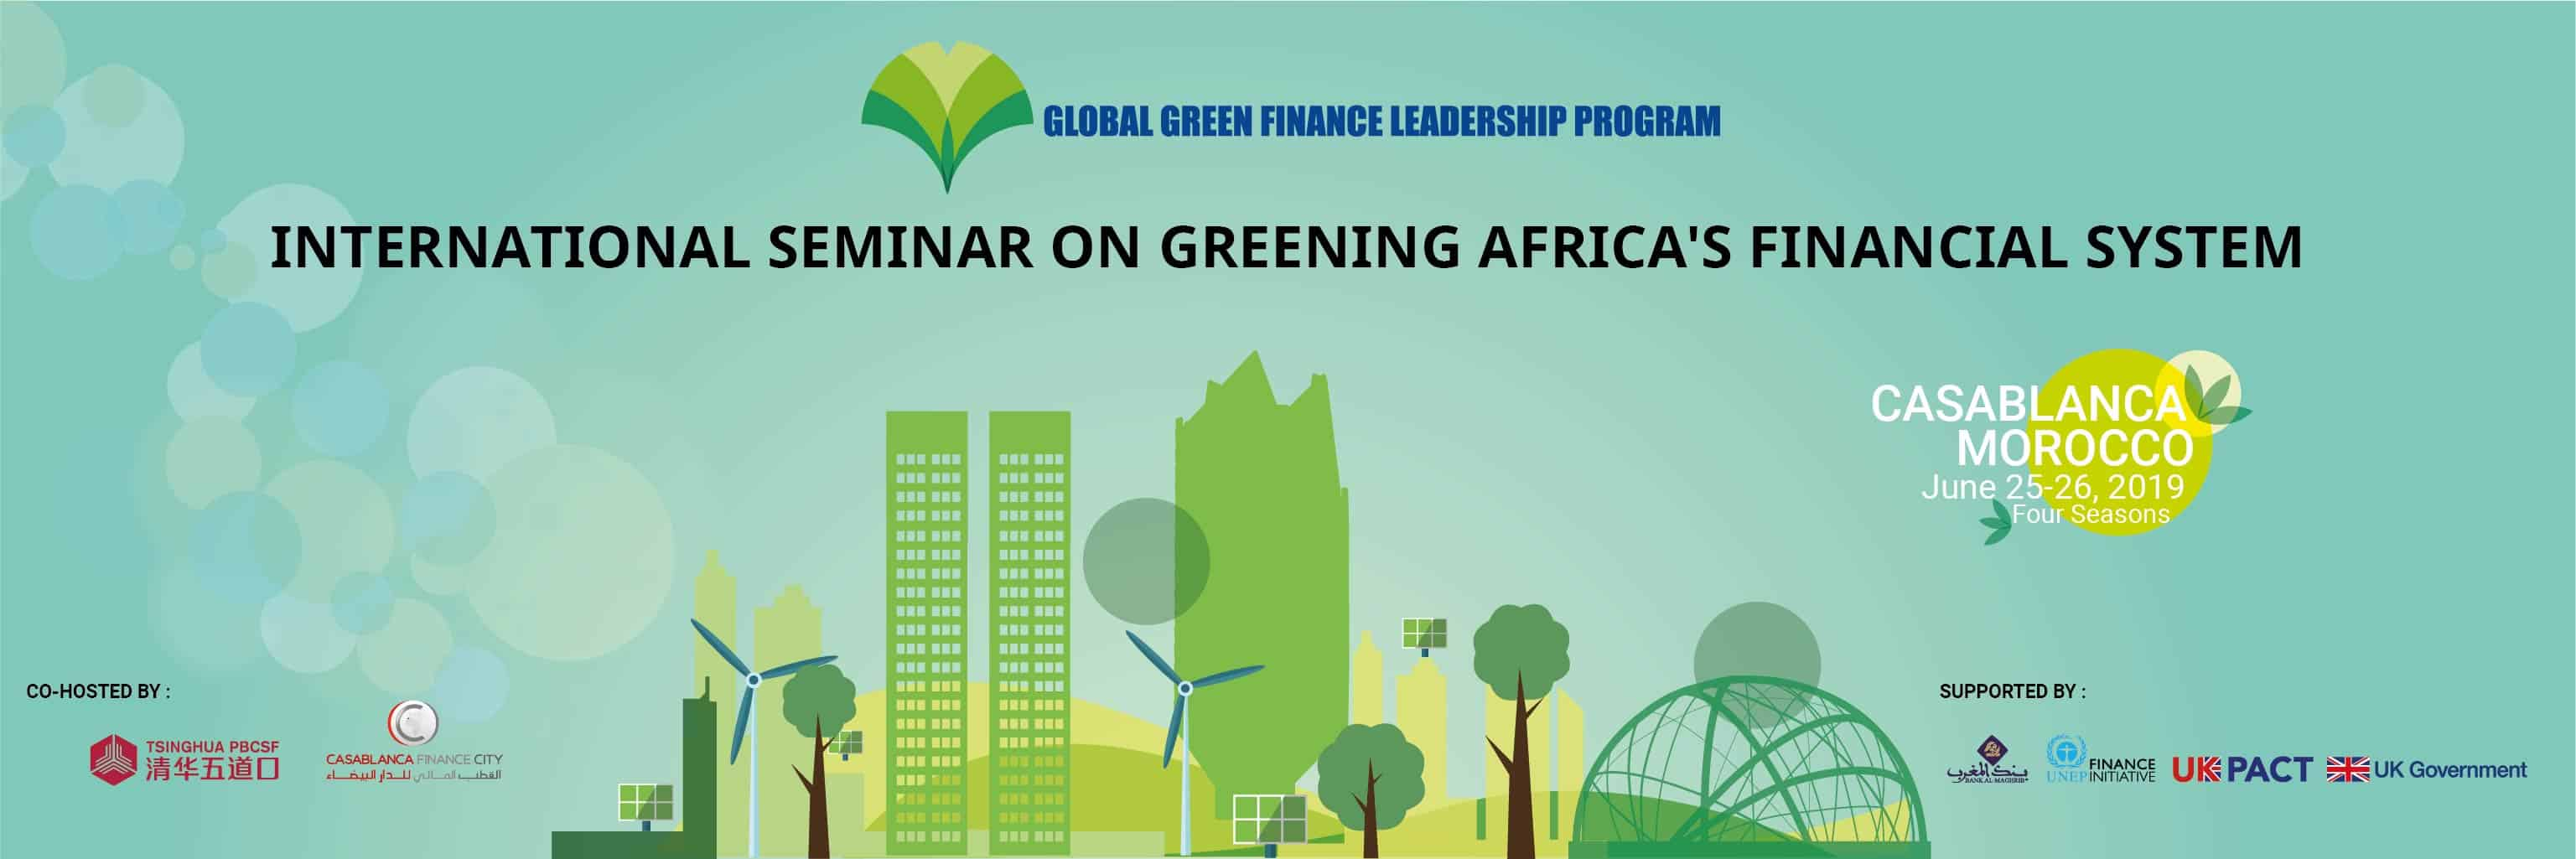 Global Green Finance Leadership Program